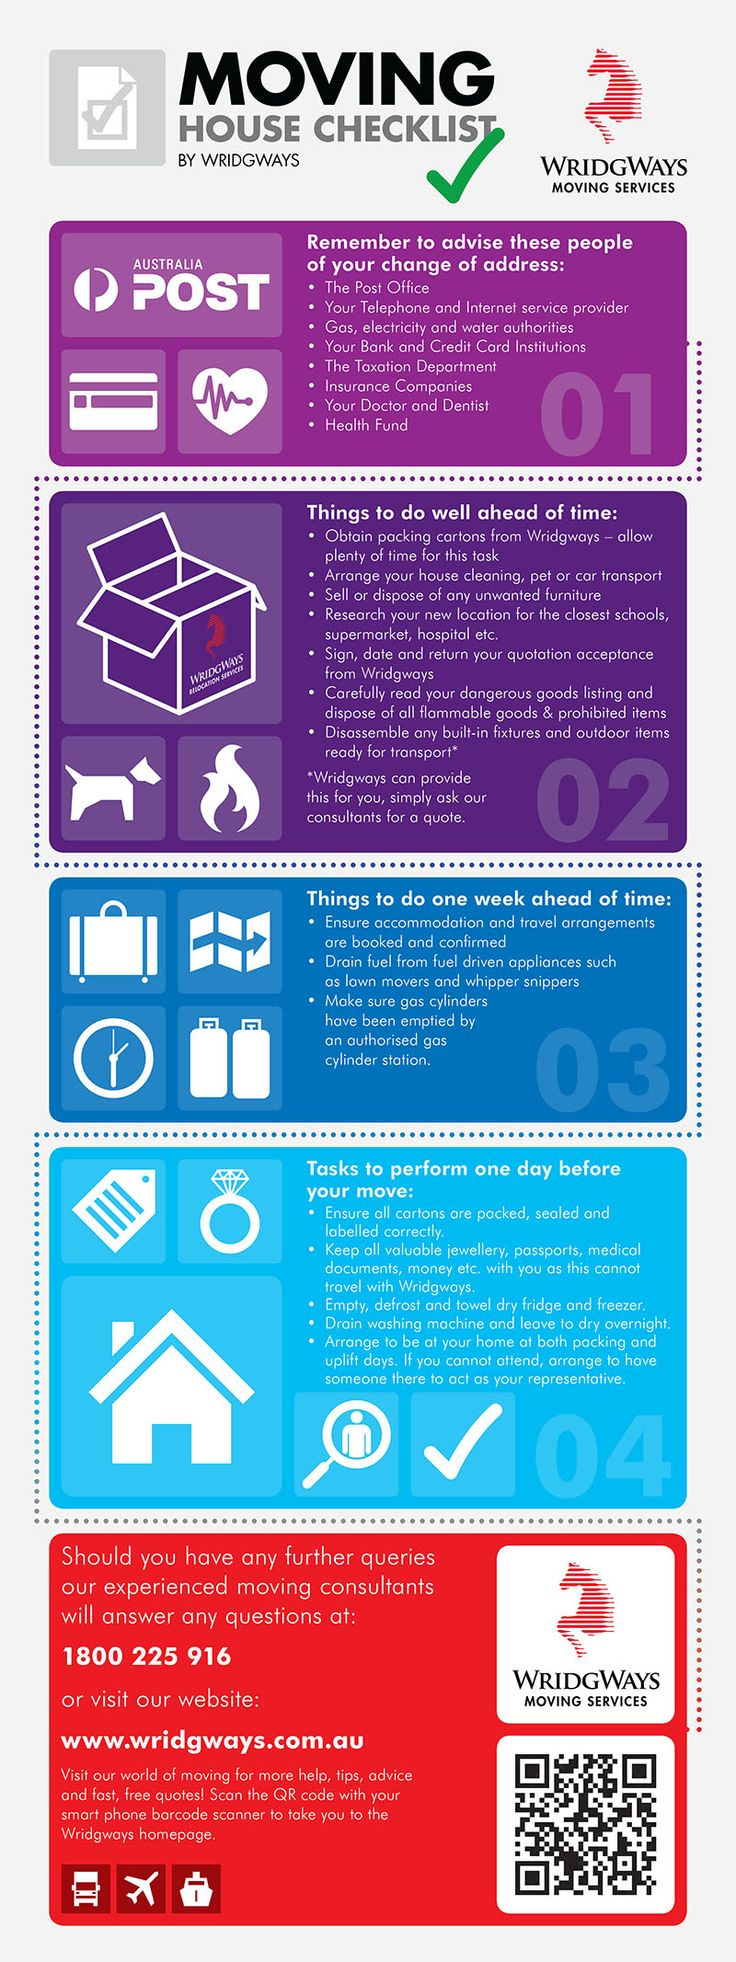 Wridgways moving checklist: SHARE this handy infographic with your friends or family moving house. Help make sure they're organised on moving day! http://www.wridgways.com.au/news/index.php/one-handy-infographic-moving-house-checklist/